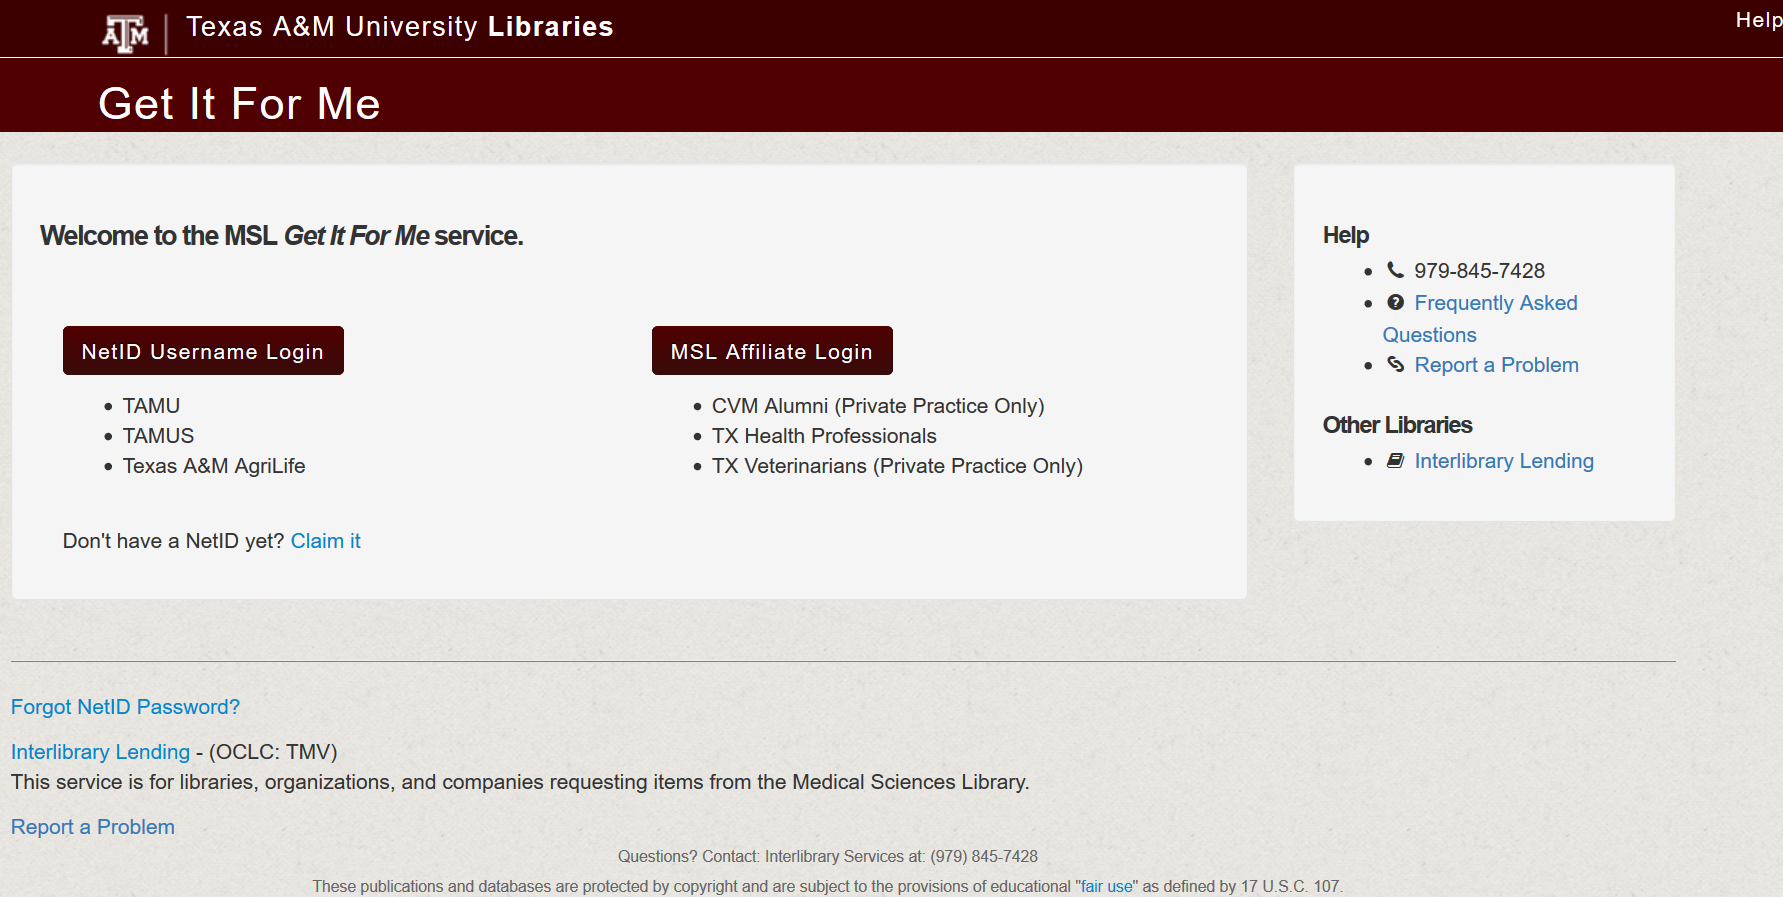 Med Sci Lib Get It For Me welcome page